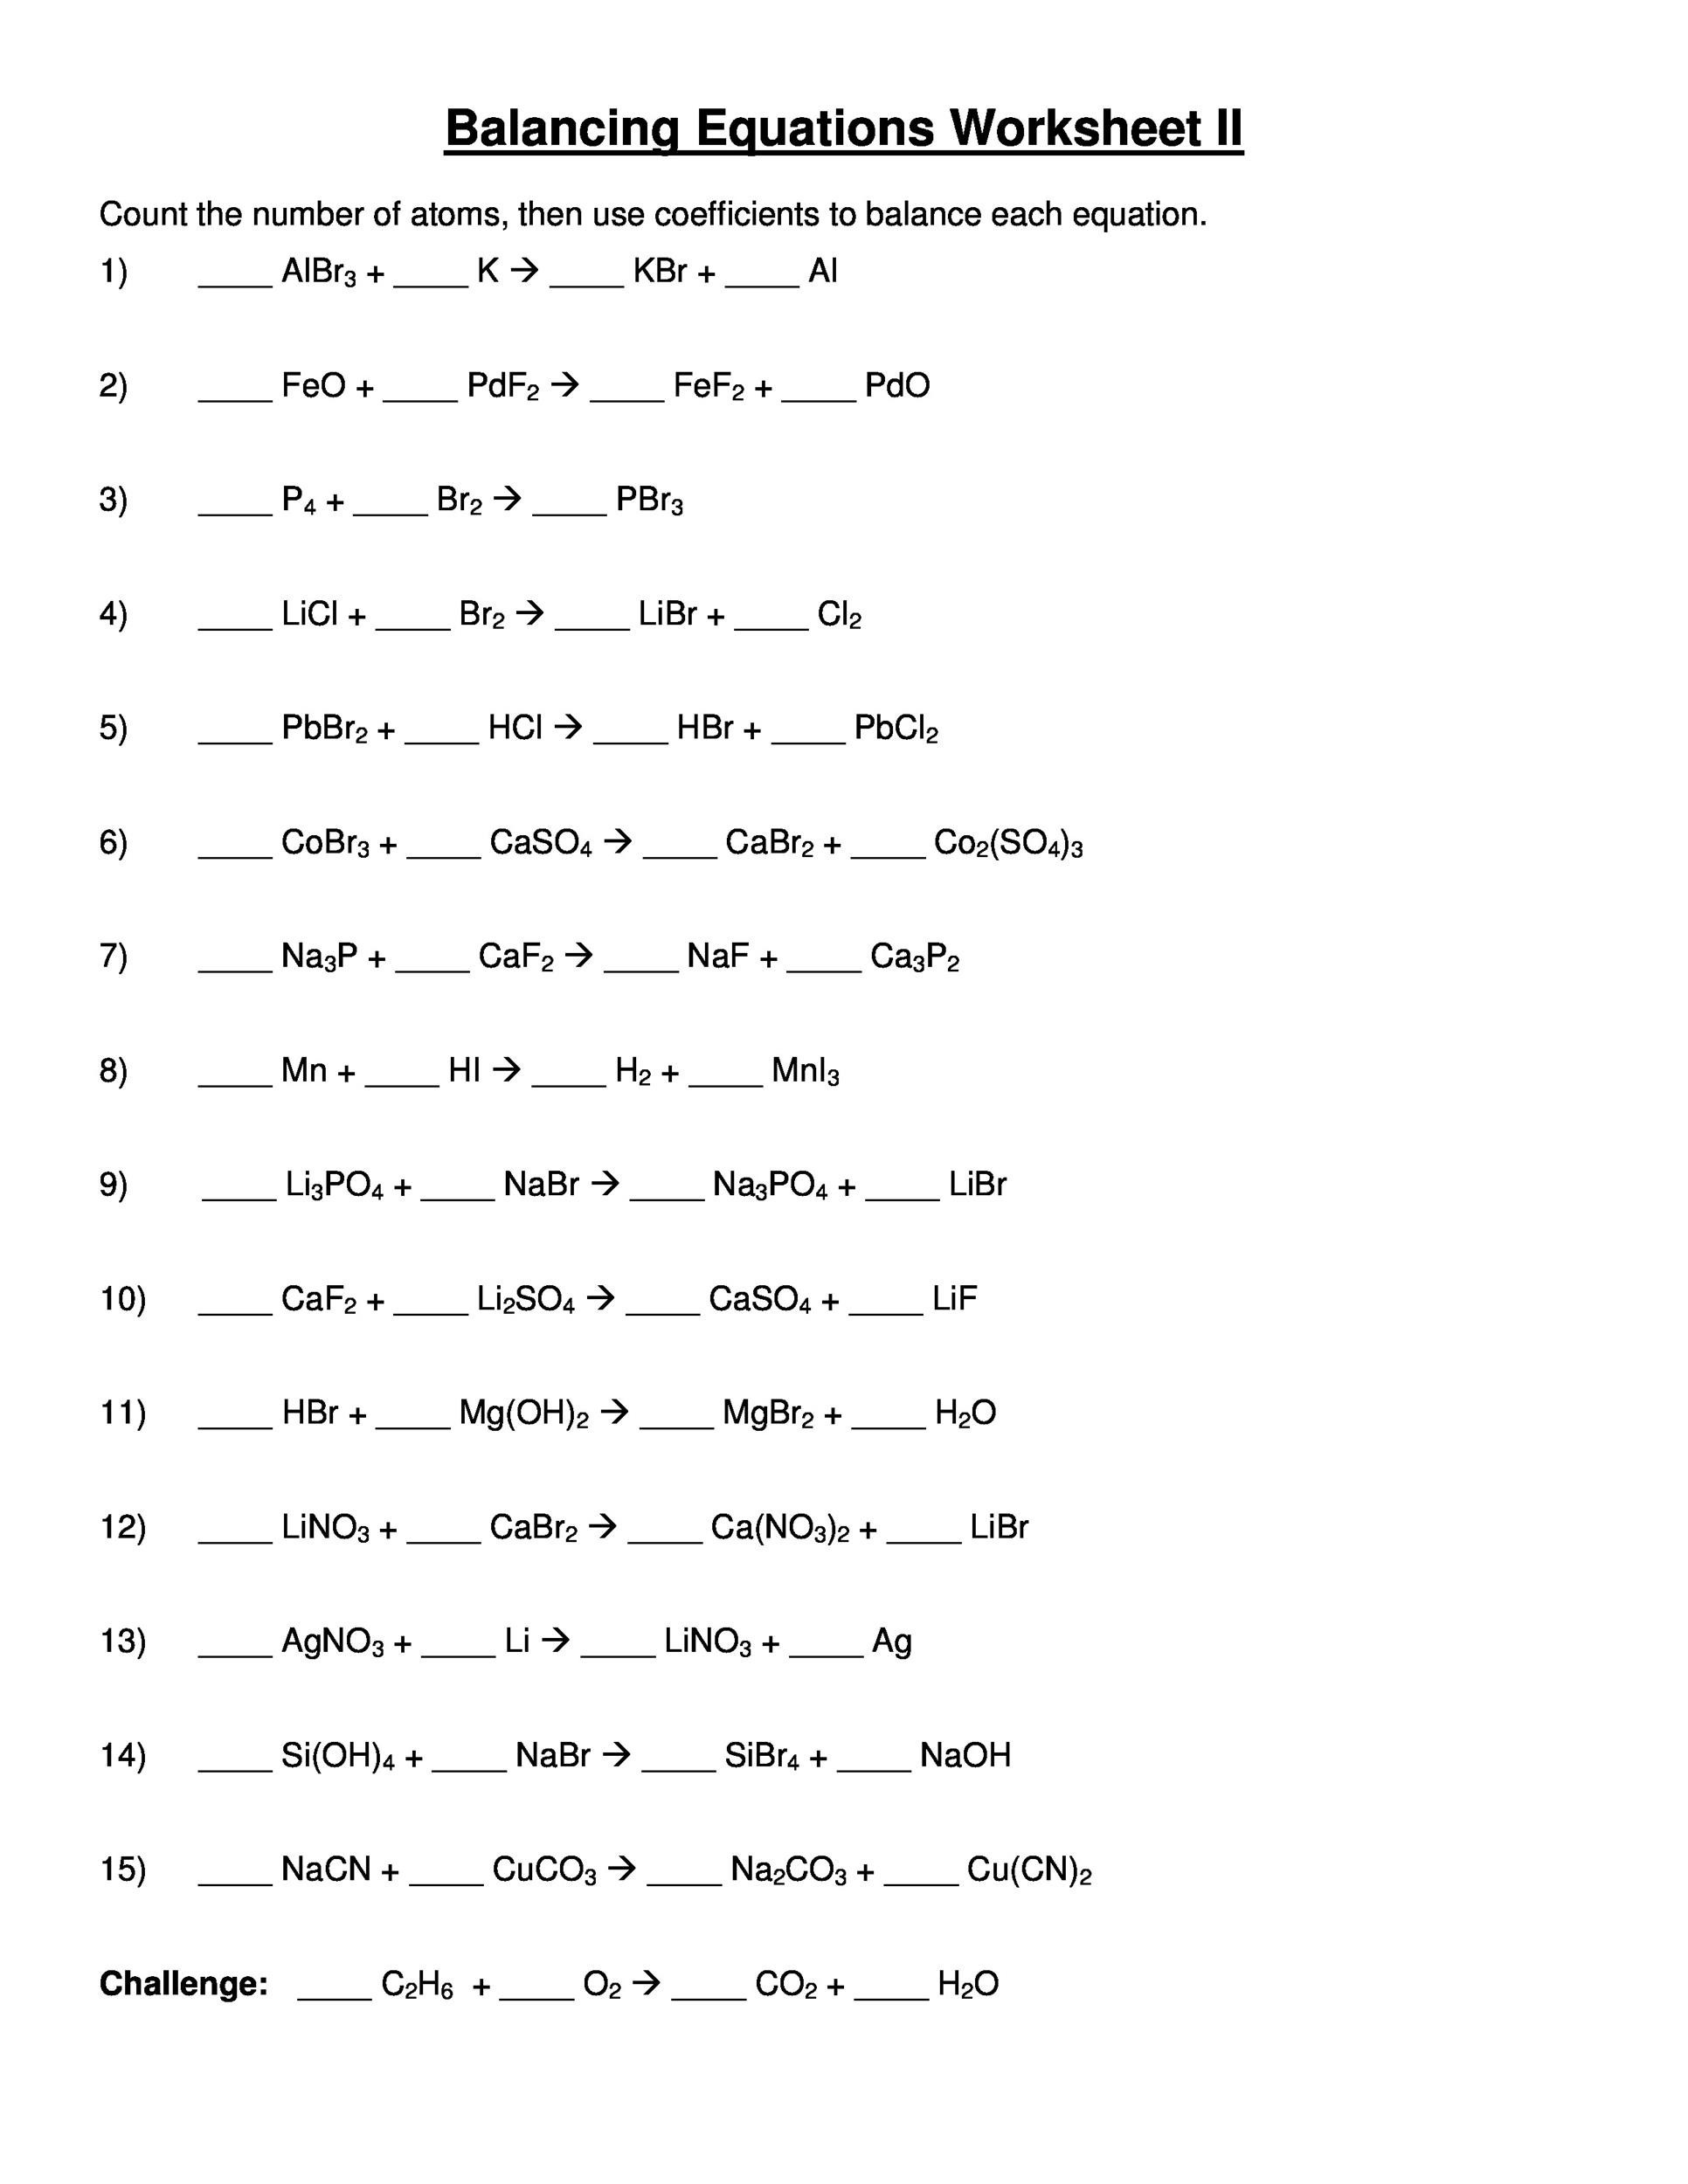 Count by 5 worksheet #1 writing and balancing formula equations answers